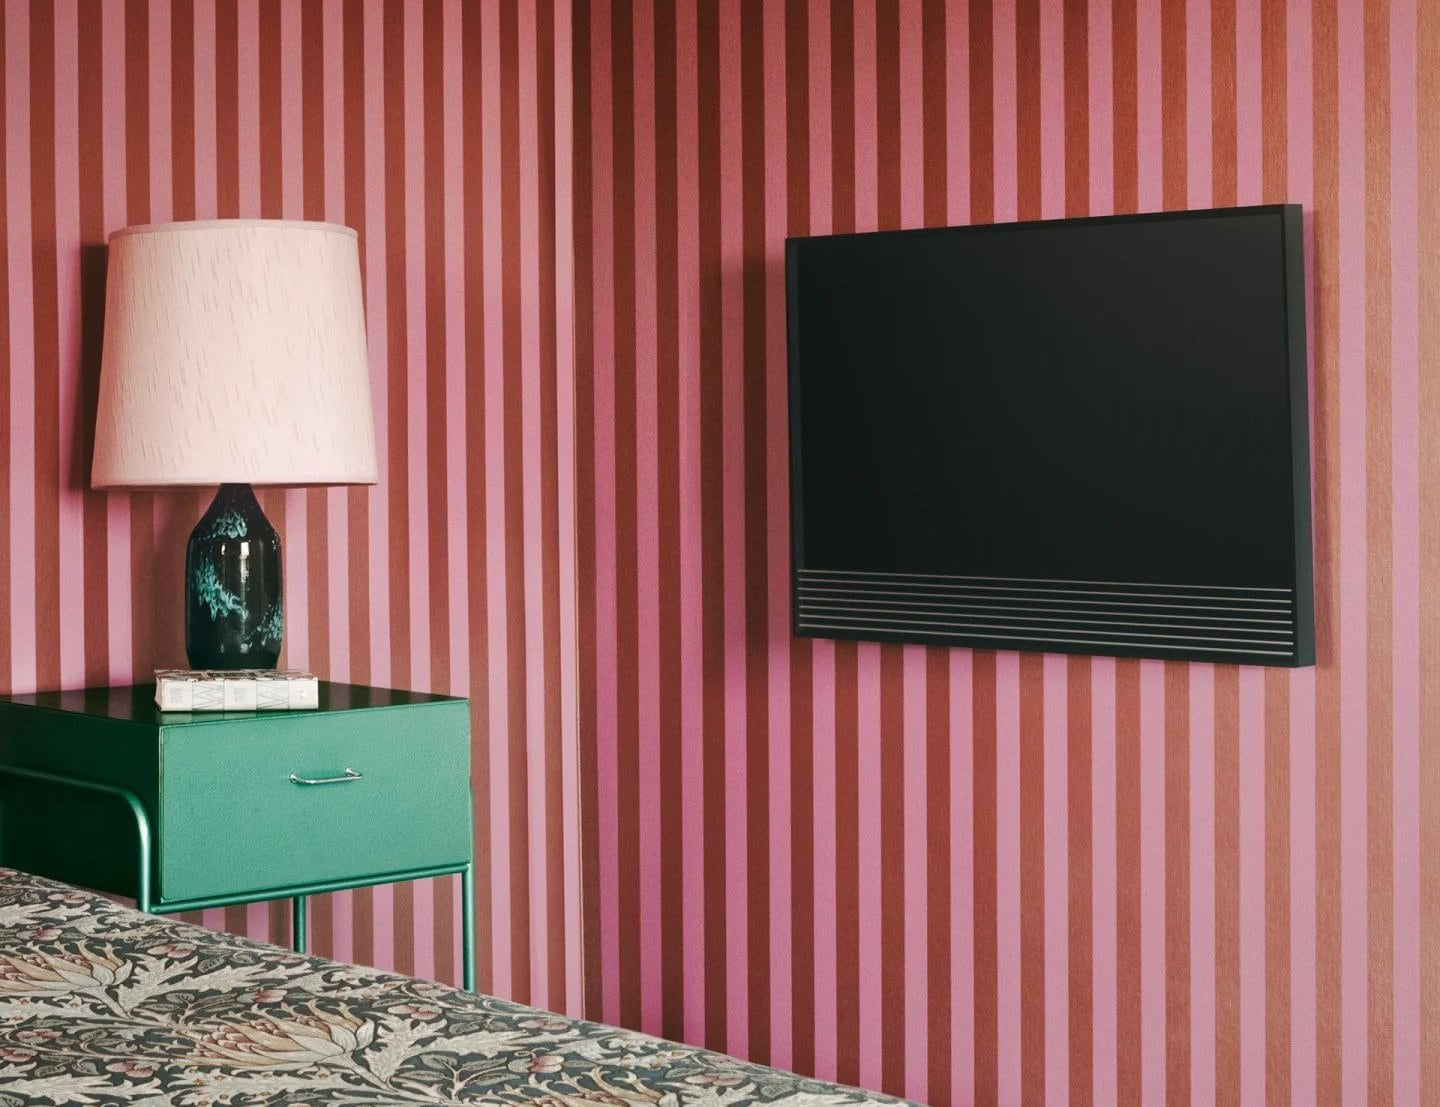 Bang & Olufsen Beovision Horizon Modern 4K UHD TV fits wherever you like